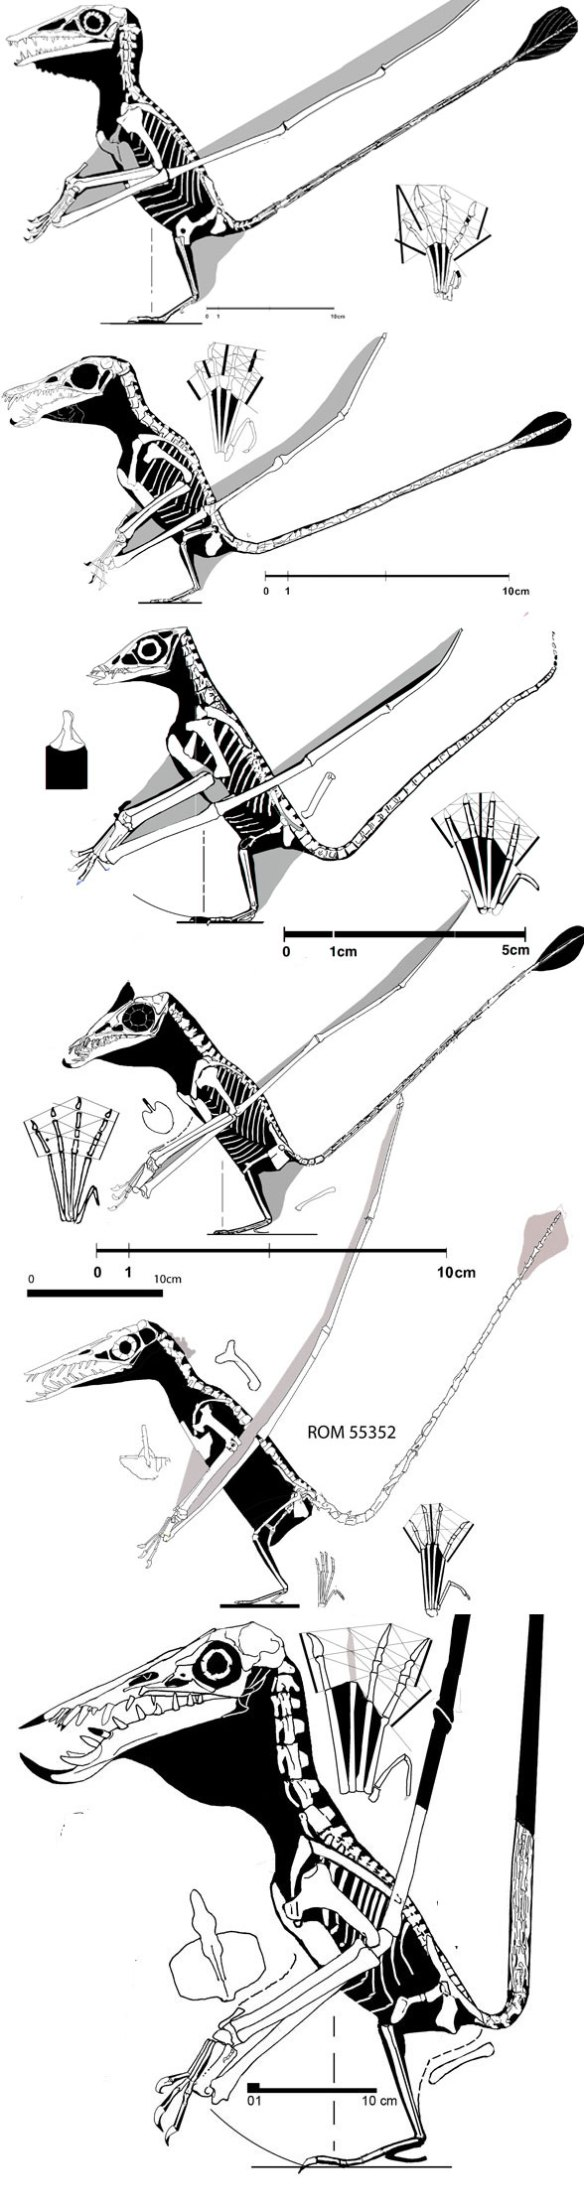 Figure 2. The evolution of Rhamphorhynchus part 1. Here, starting with Campylognathoides (the Pittsburgh specimen) this lineage experiences a size reduction down to Bellubrunus, then the rostrum elongates and the size increases to the giant of the Rhamphorhynchus clade, no. 81.